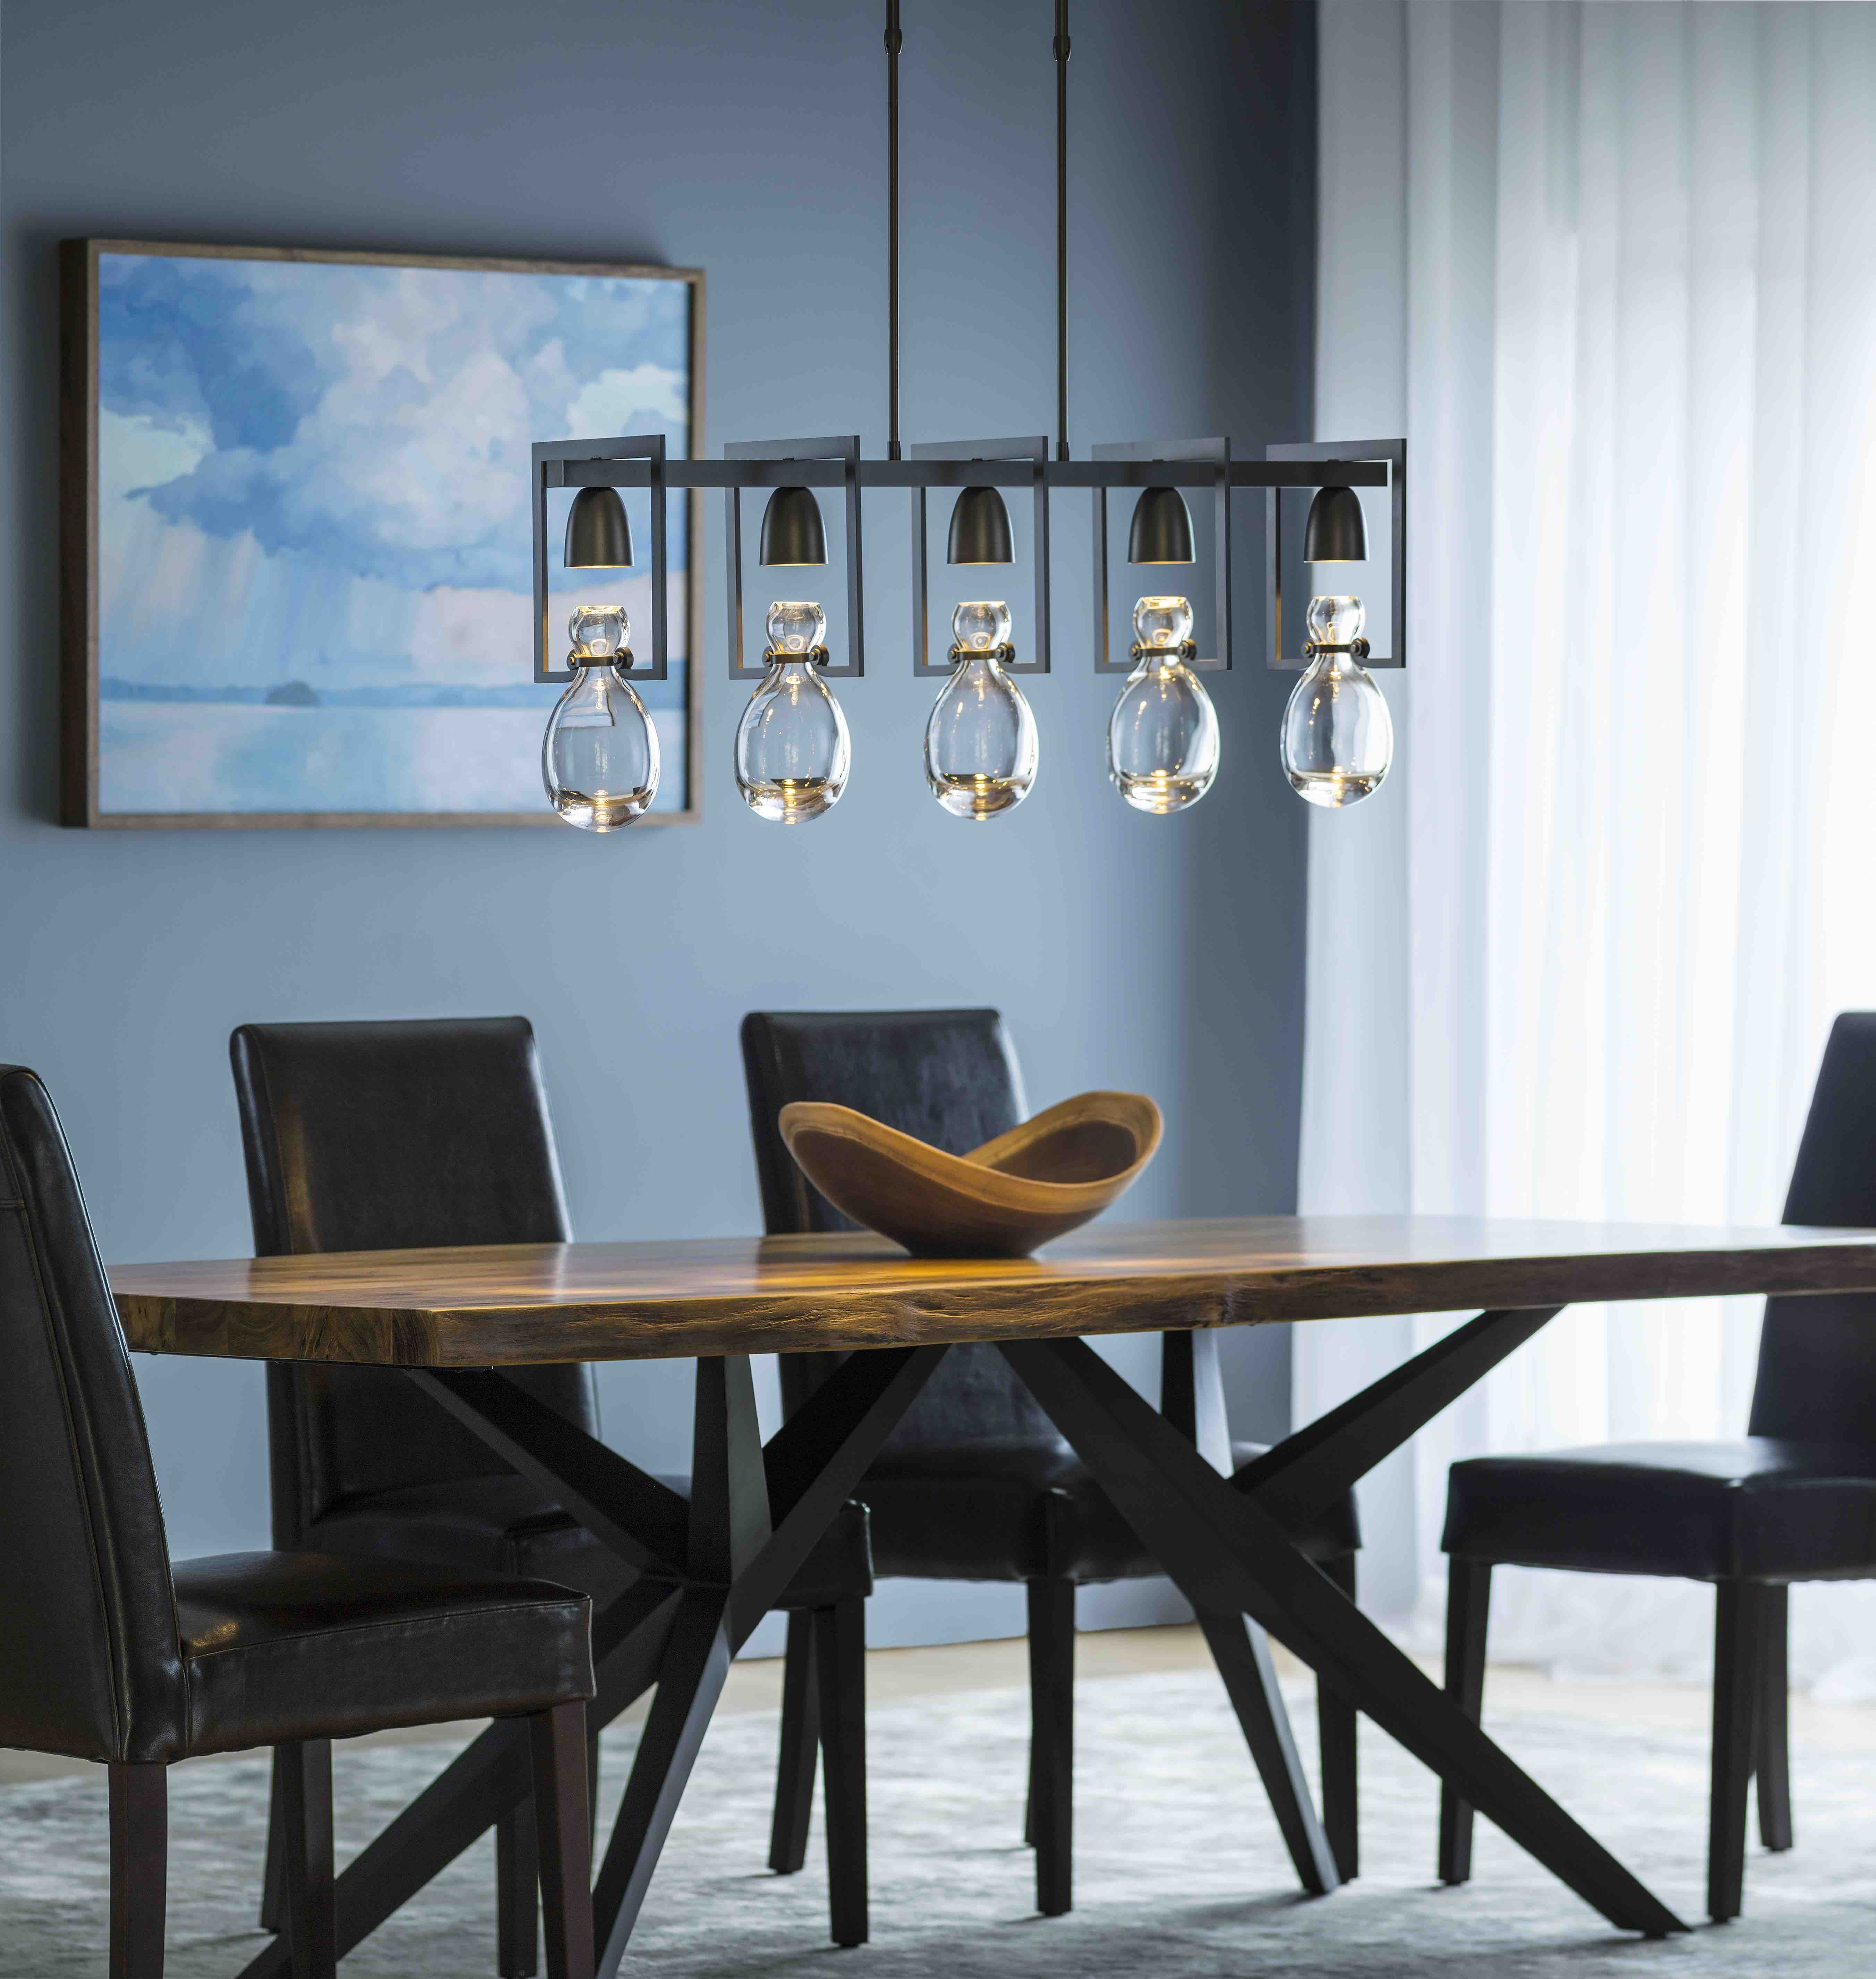 Hubbardton Forge Apothecary five light pendant